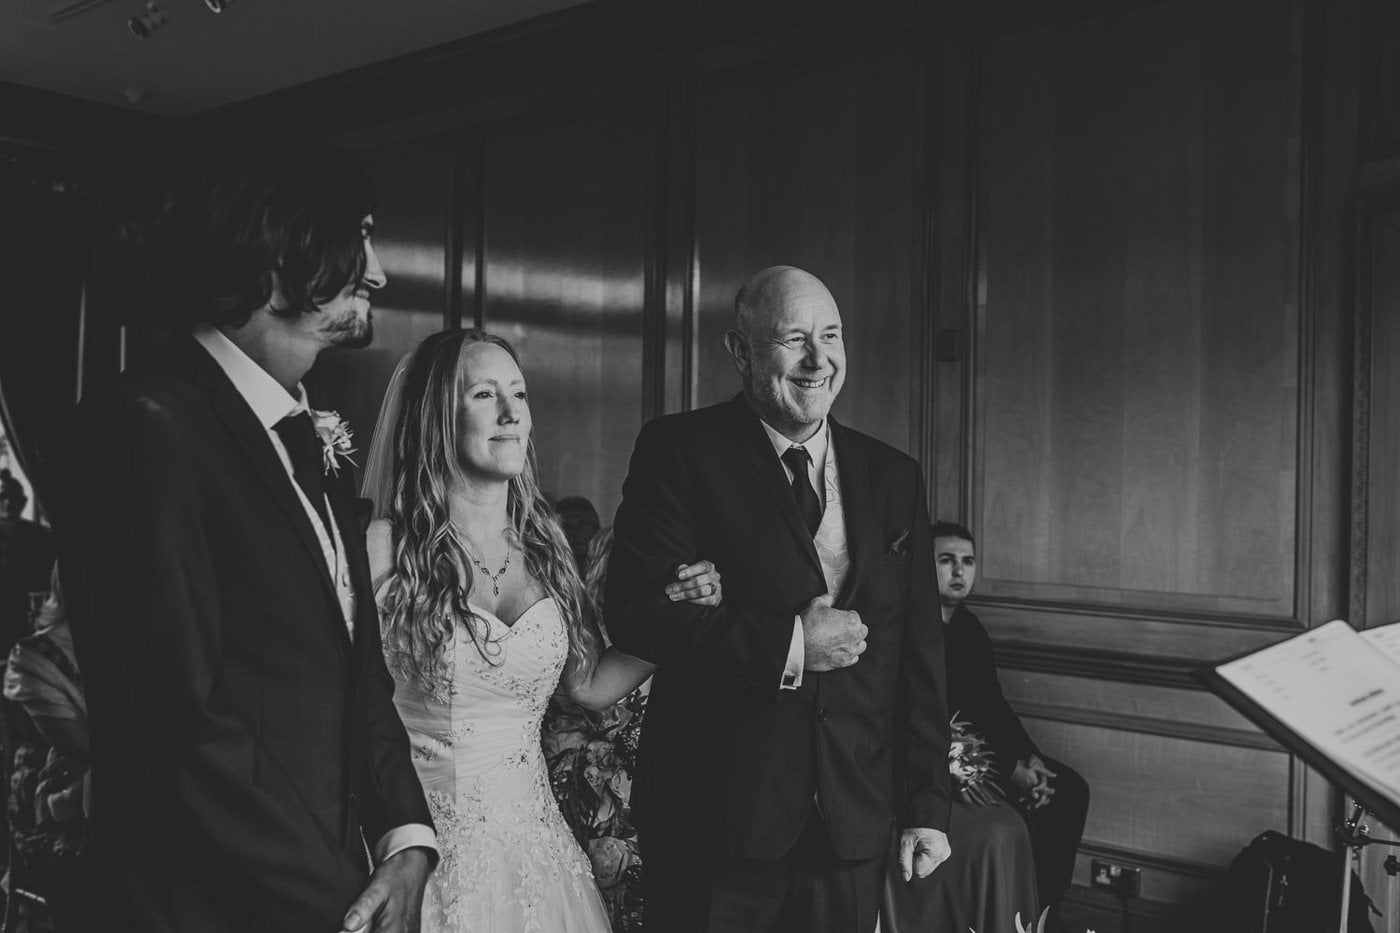 brides father smiling during wedding ceremony